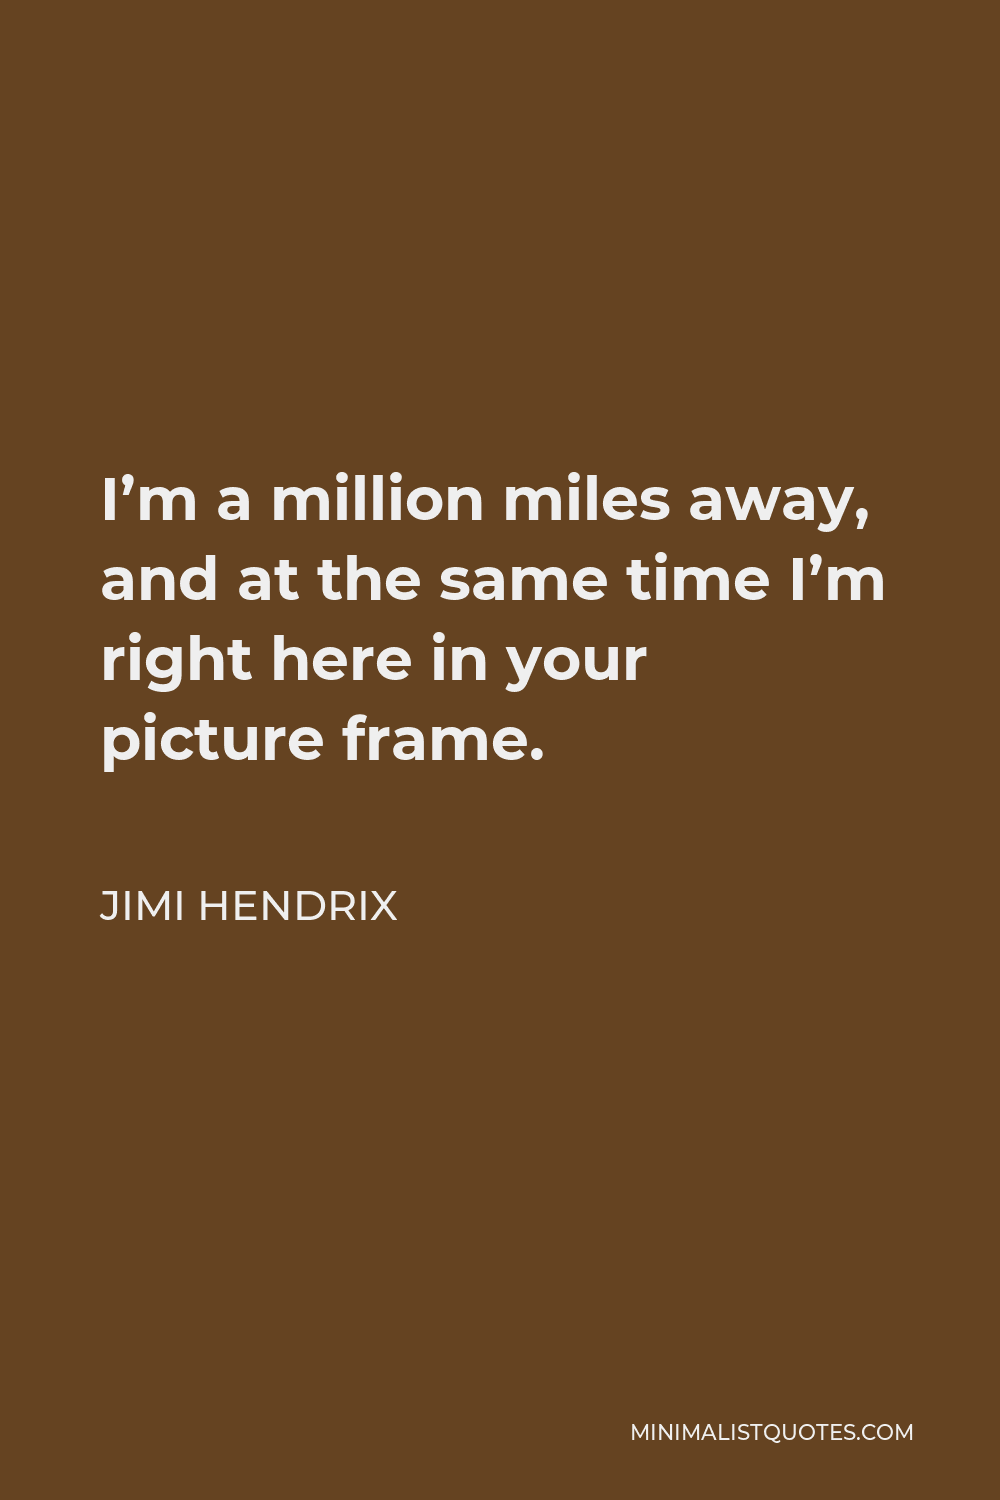 Jimi Hendrix Quote - I'm a million miles away, and at the same time I'm right here in your picture frame.